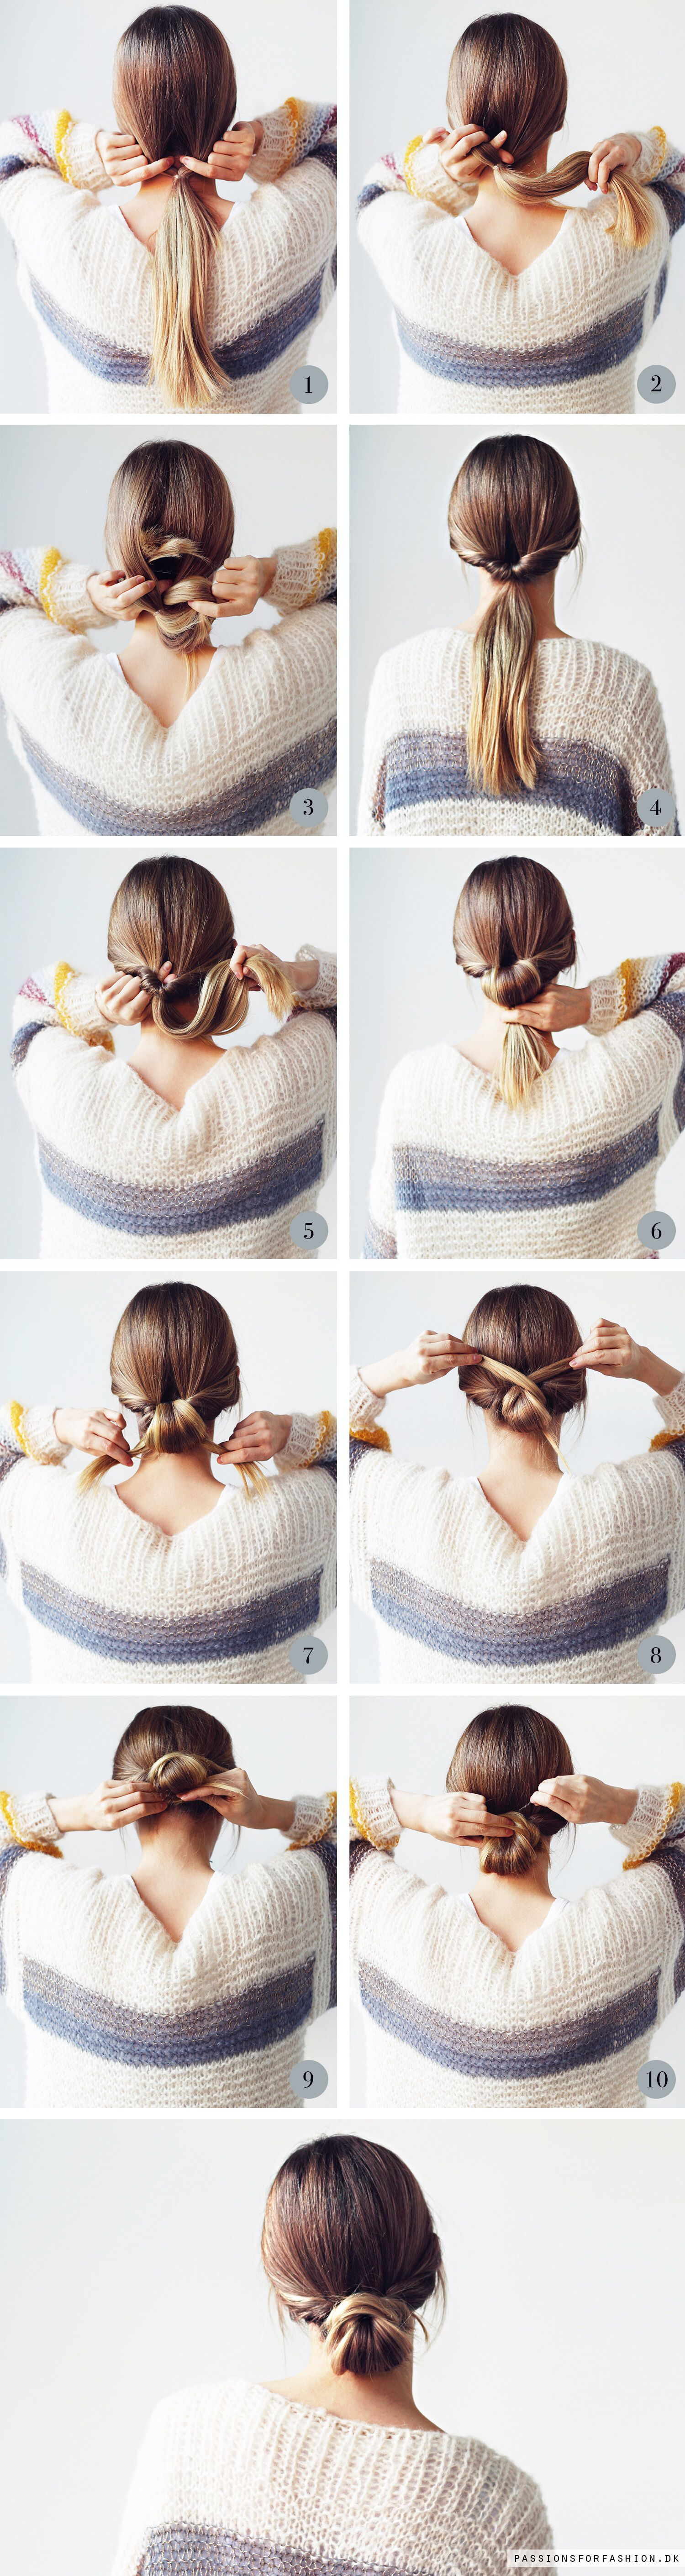 Messy bun updo by passions for fashion hair pinterest bun updo